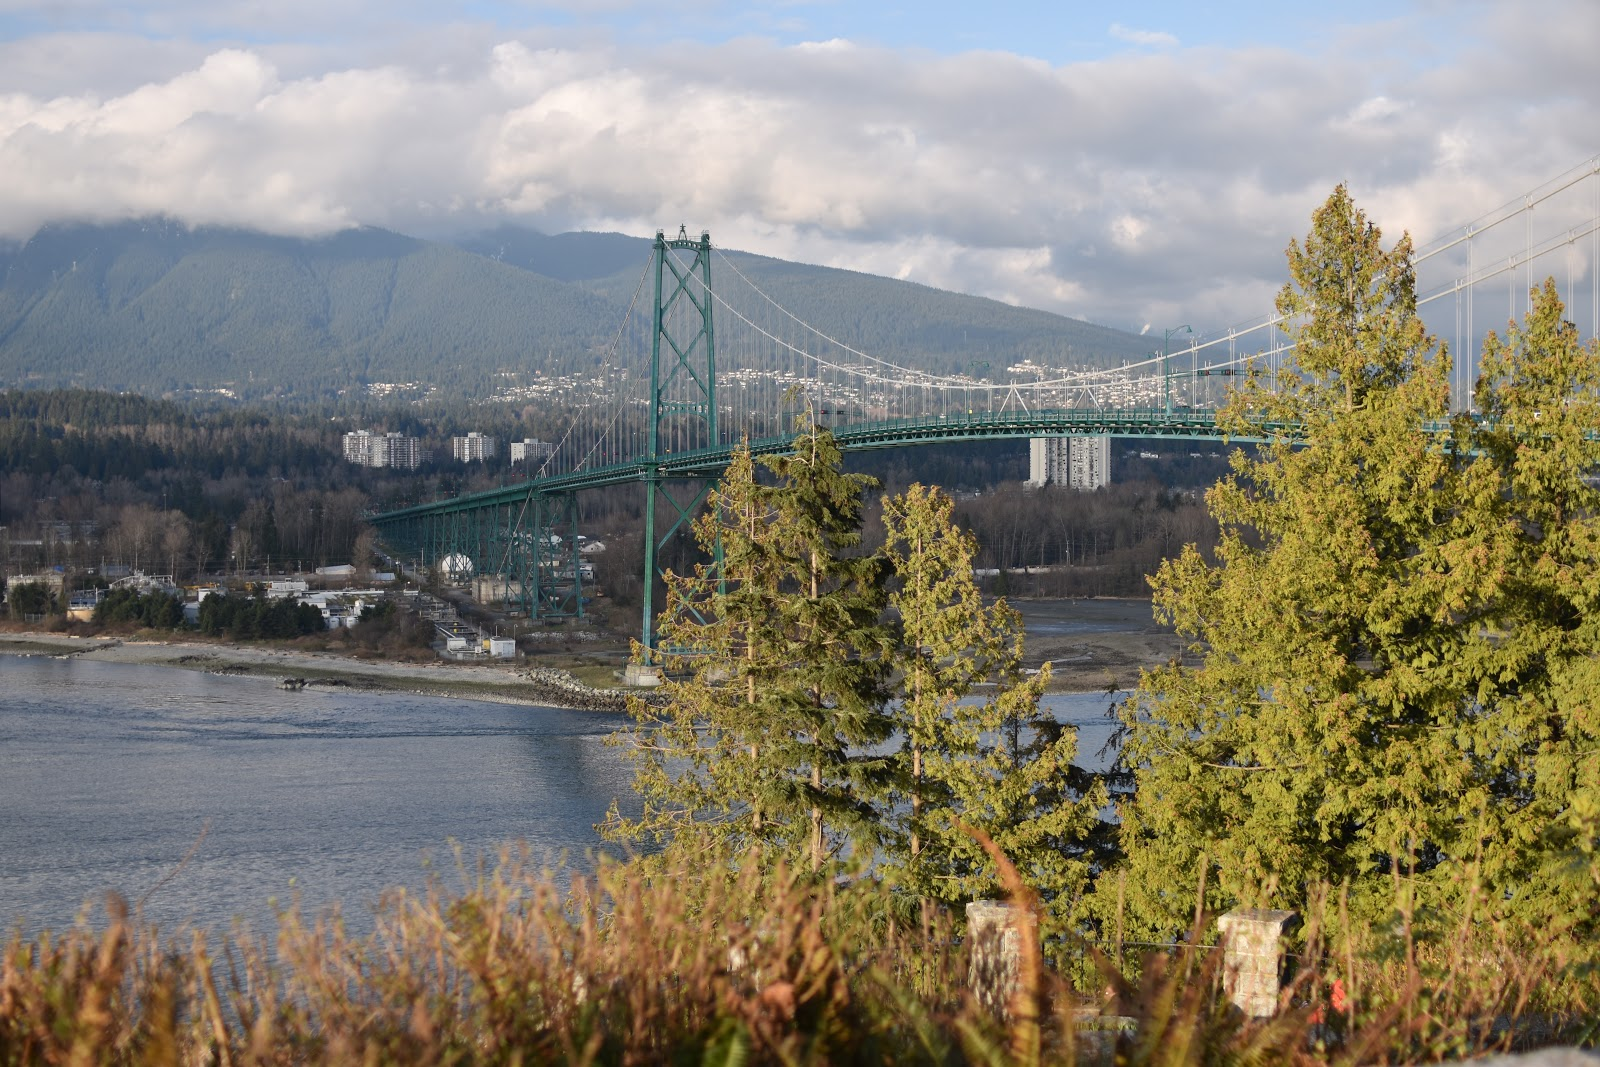 View of the Lions Gate Bridge and Burrard Inlet, Vancouver, BC, Canada